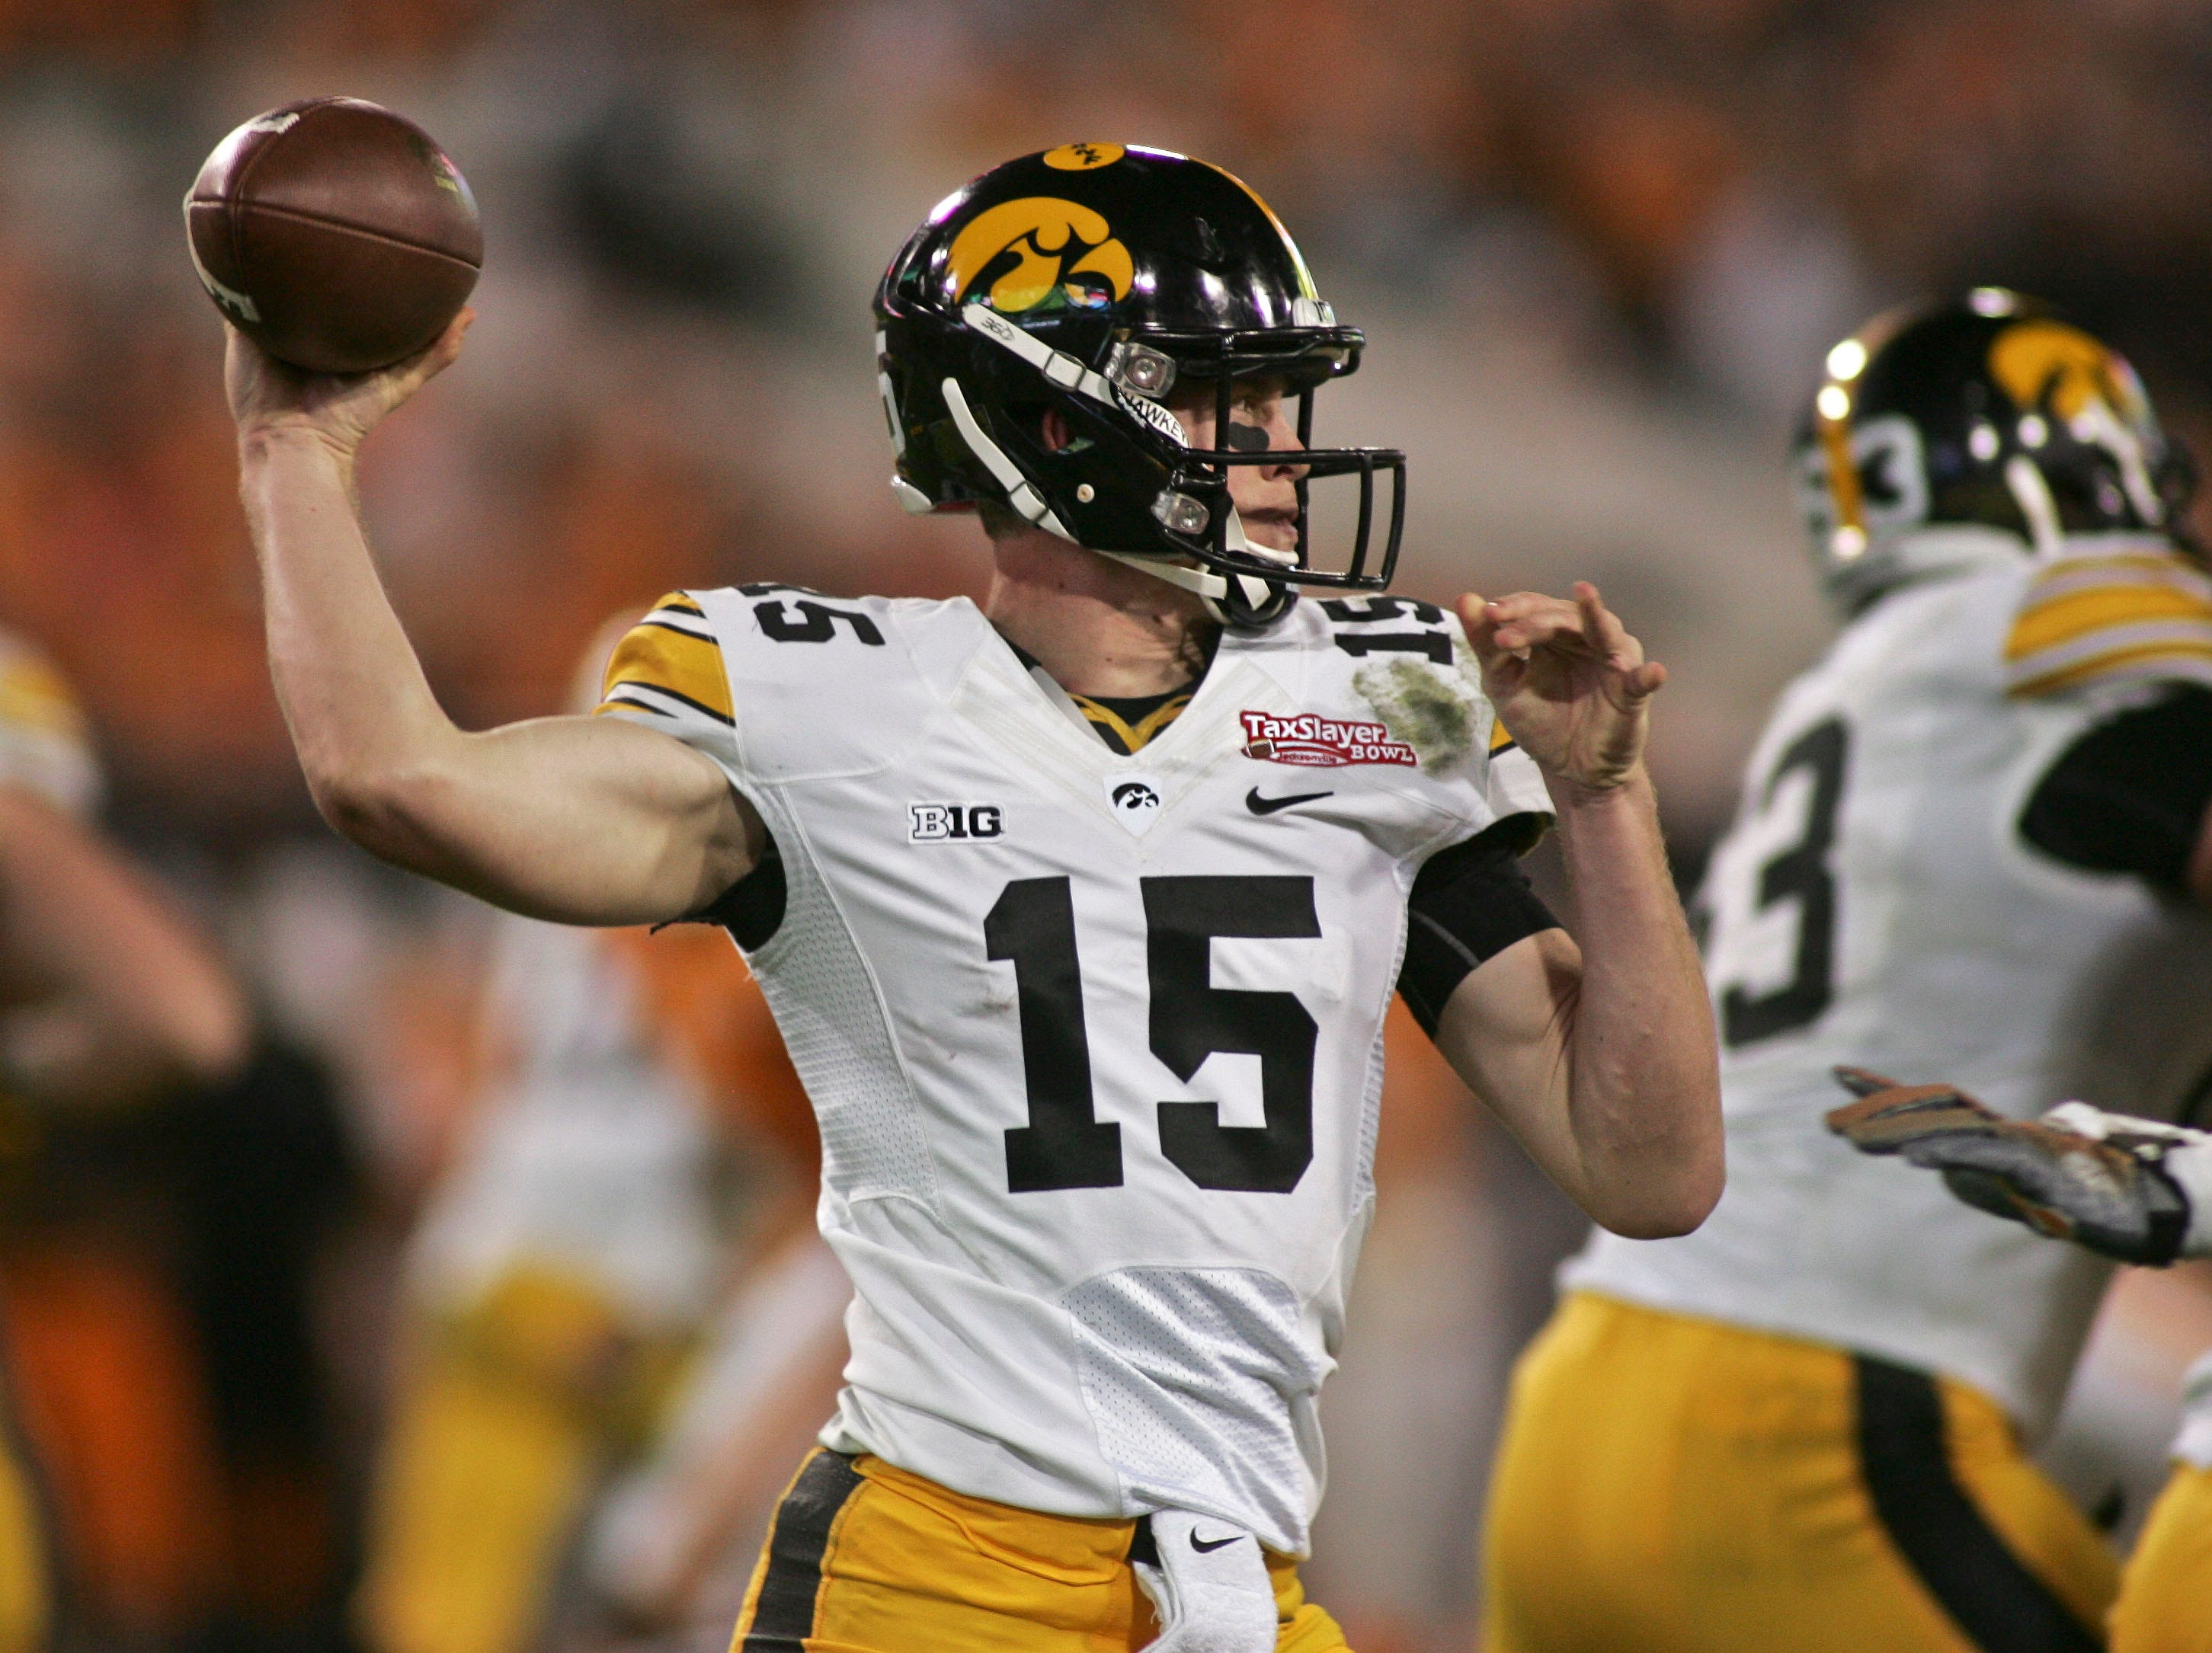 Jan 2, 2015; Jacksonville, FL, USA; Iowa Hawkeyes quarterback Jake Rudock (15) throws in the fourth quarter of their 2015 TaxSlayer Bowl game against the Tennessee Volunteersat EverBank Field. The Tennessee Volunteers beat the Iowa Hawkeyes 45-28. Mandatory Credit: Phil Sears-USA TODAY Sports